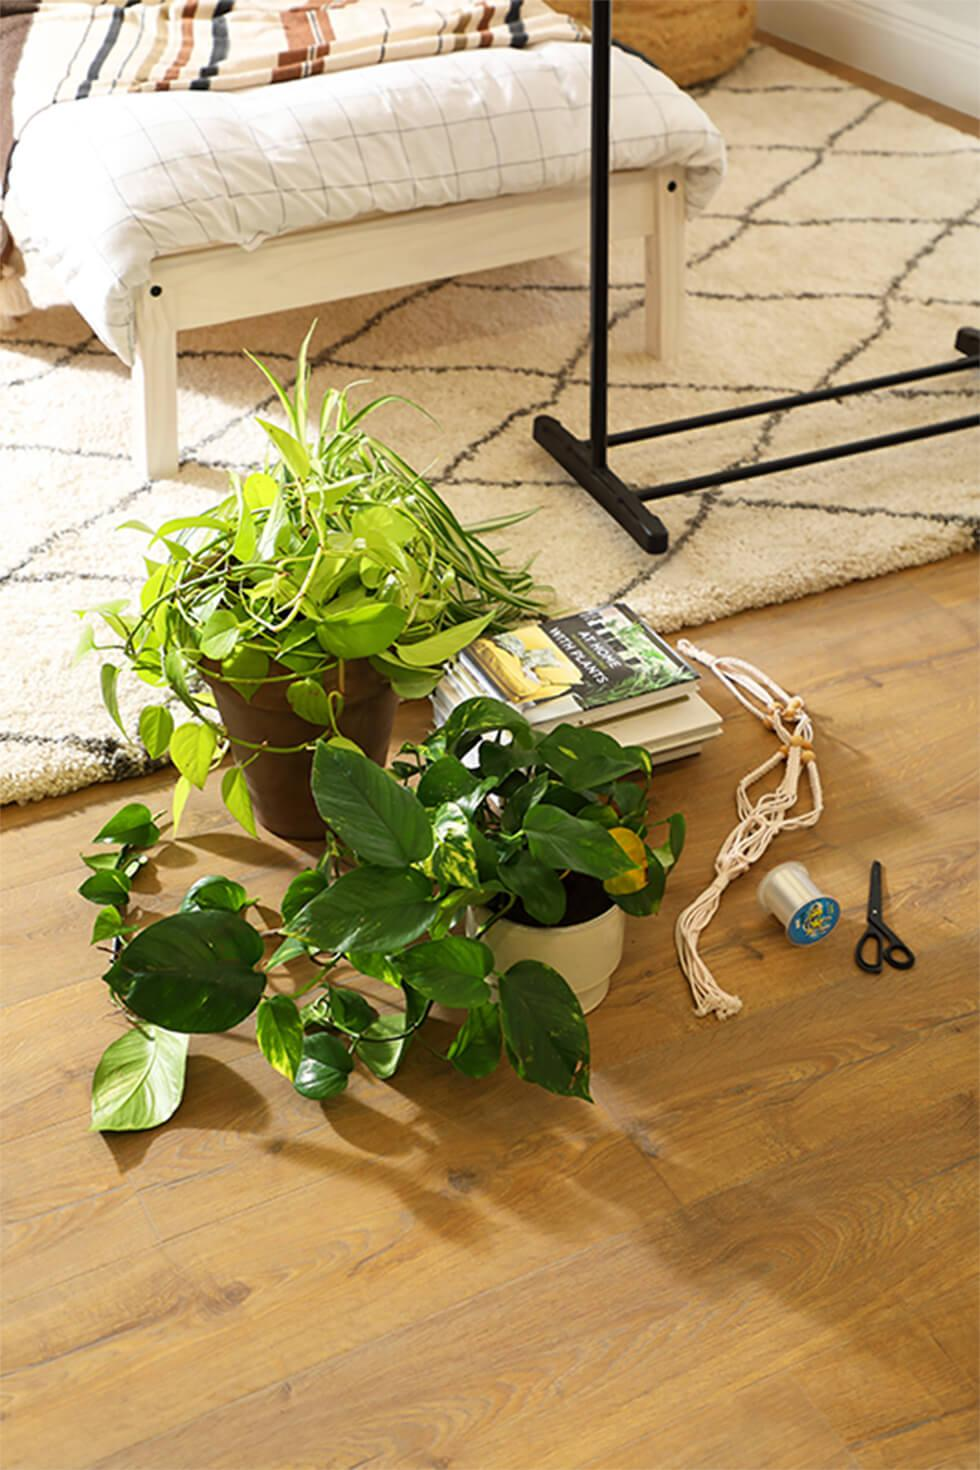 Things you will need to make a plant room divider